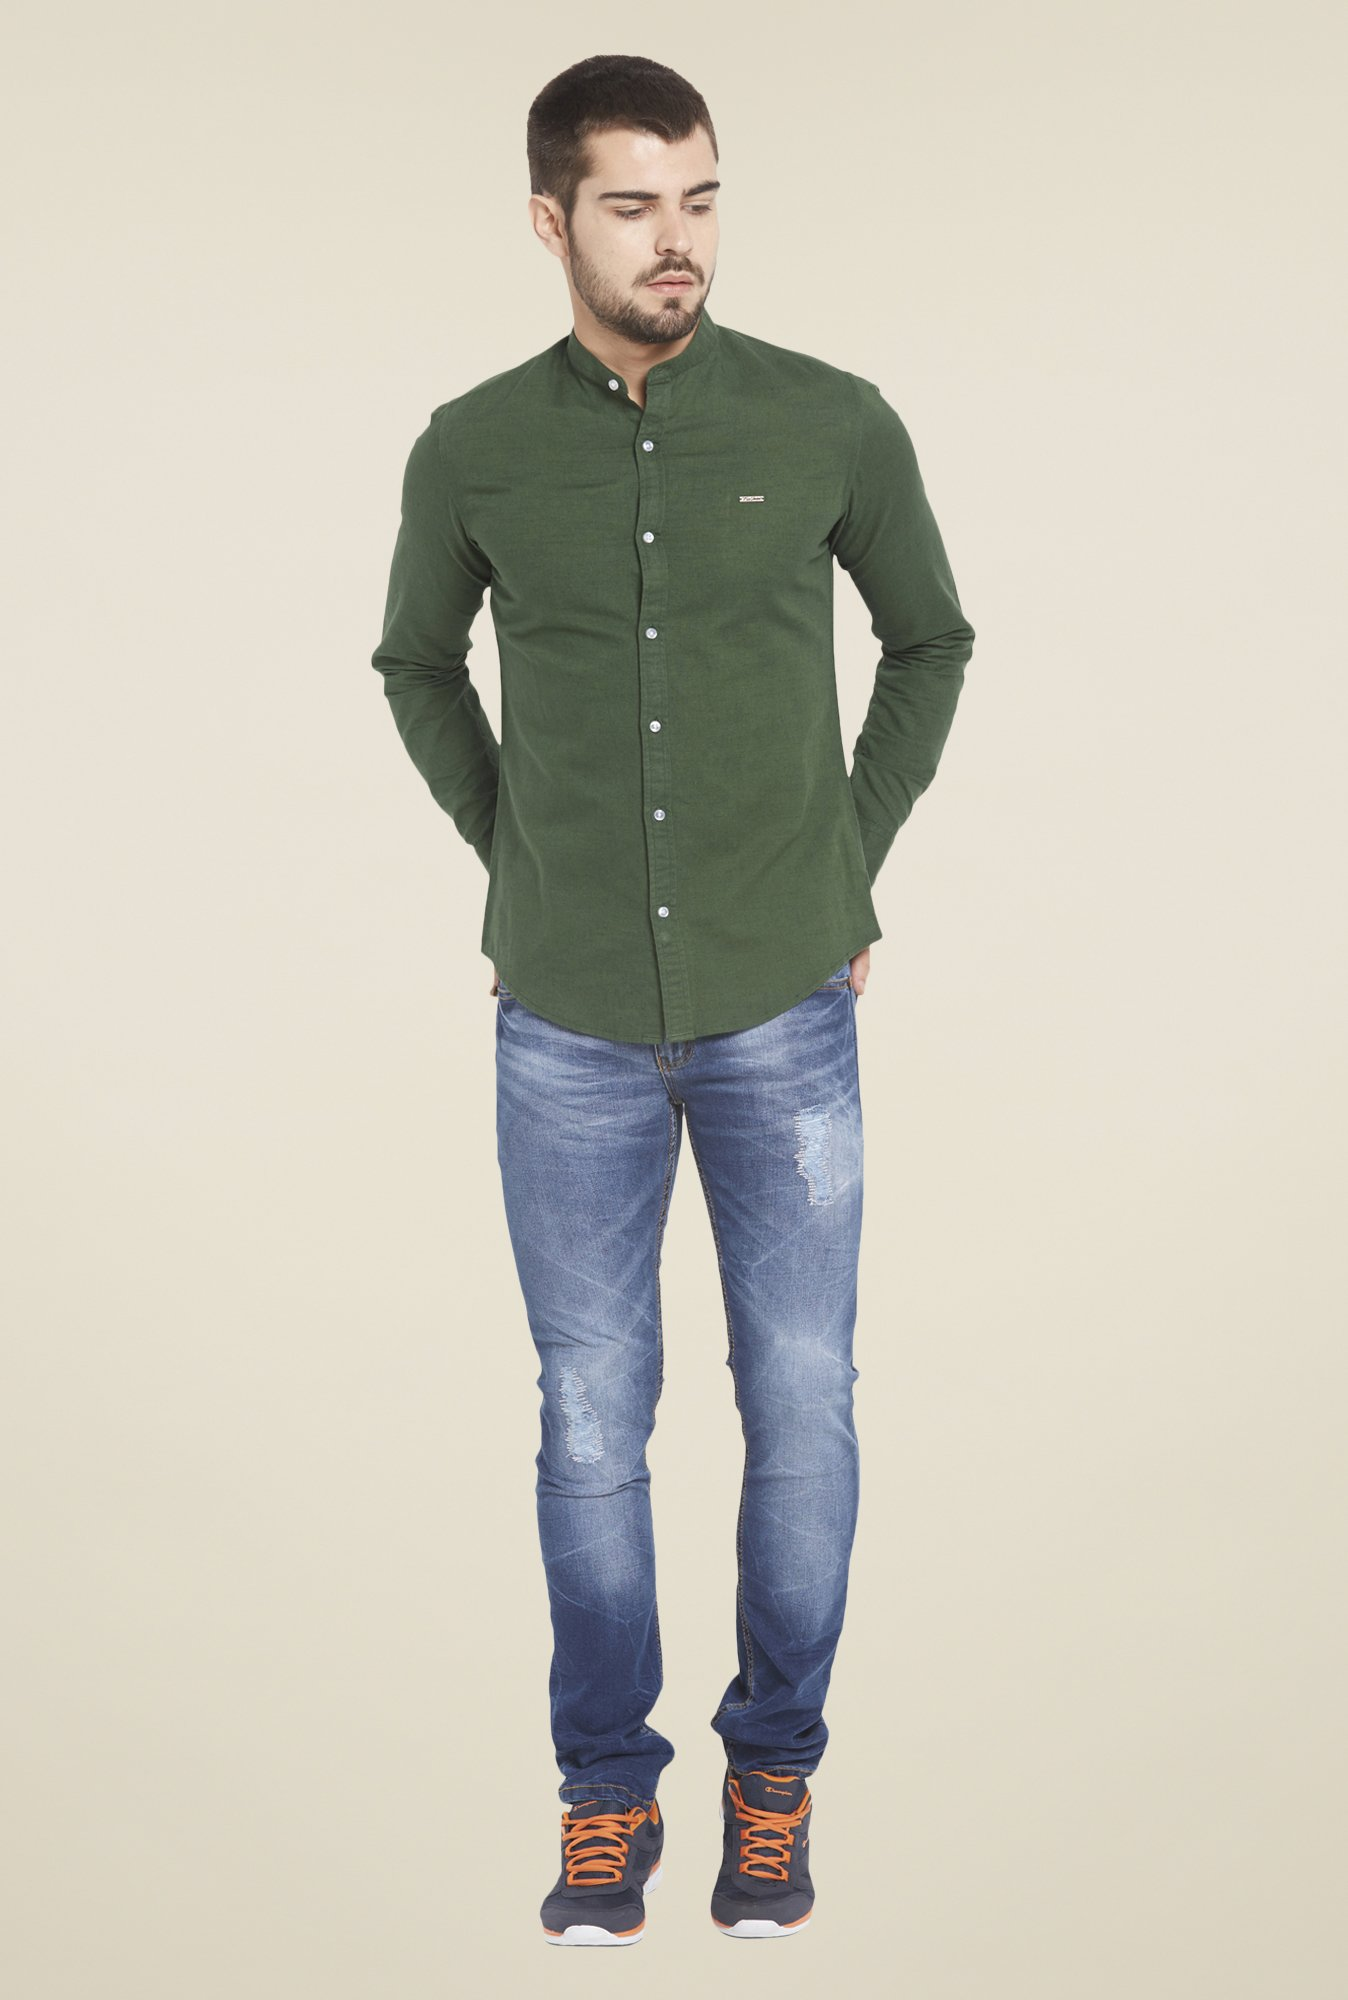 Globus Bottle Green Solid Shirt